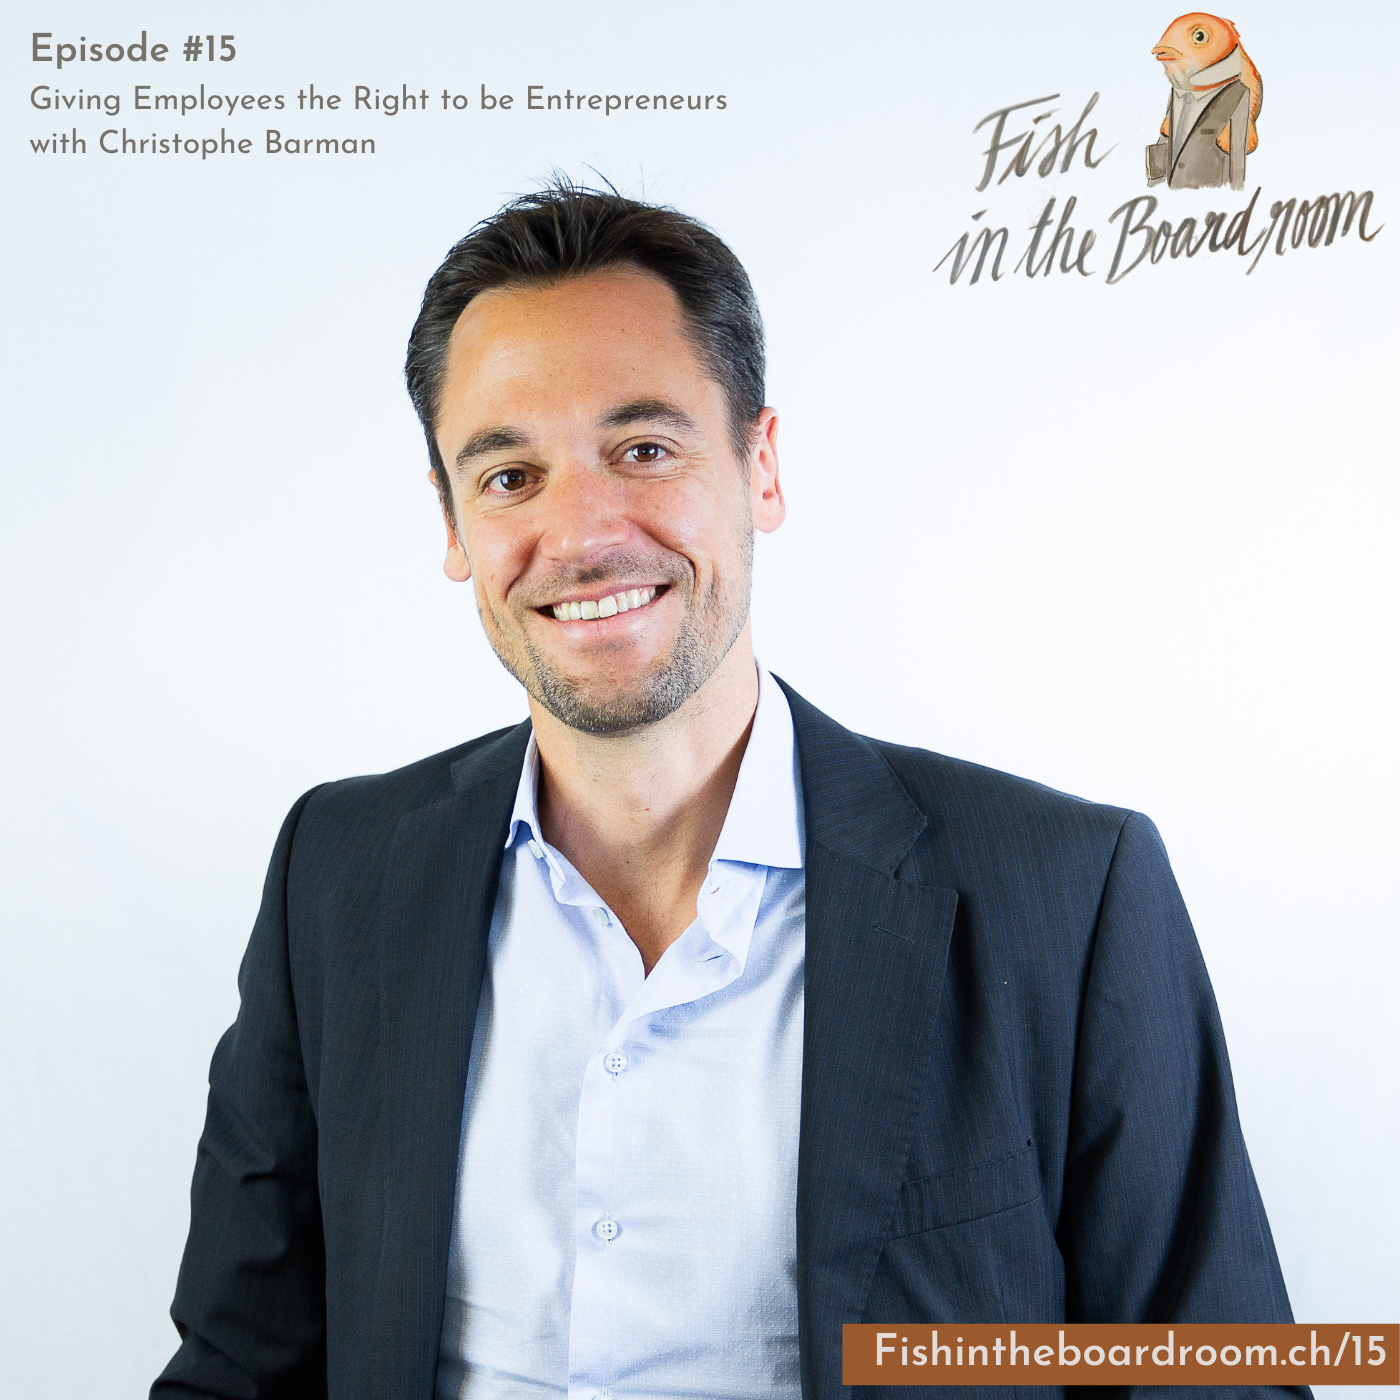 #15 Giving Employees the Right to be Entrepreneurs Interview with Christophe Barman